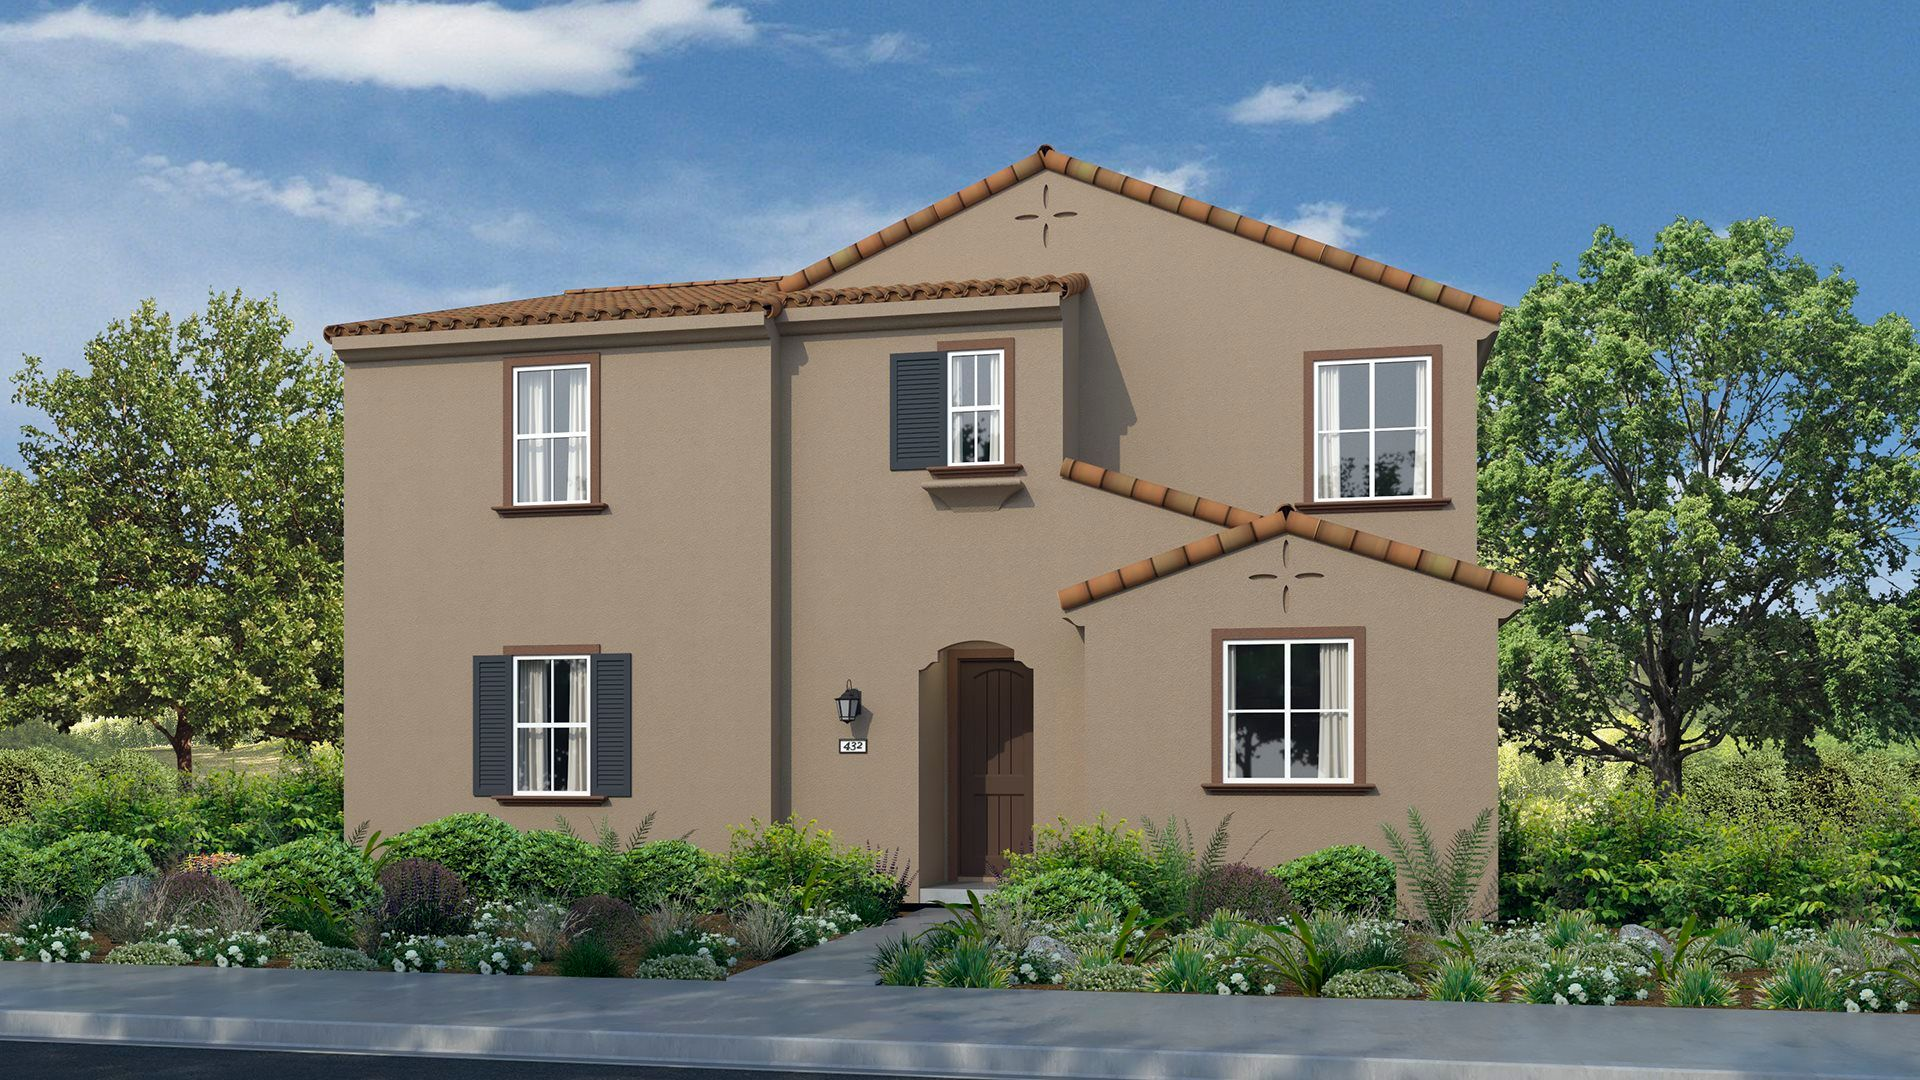 Voyage at The Preserve - Residence Two A Exterior